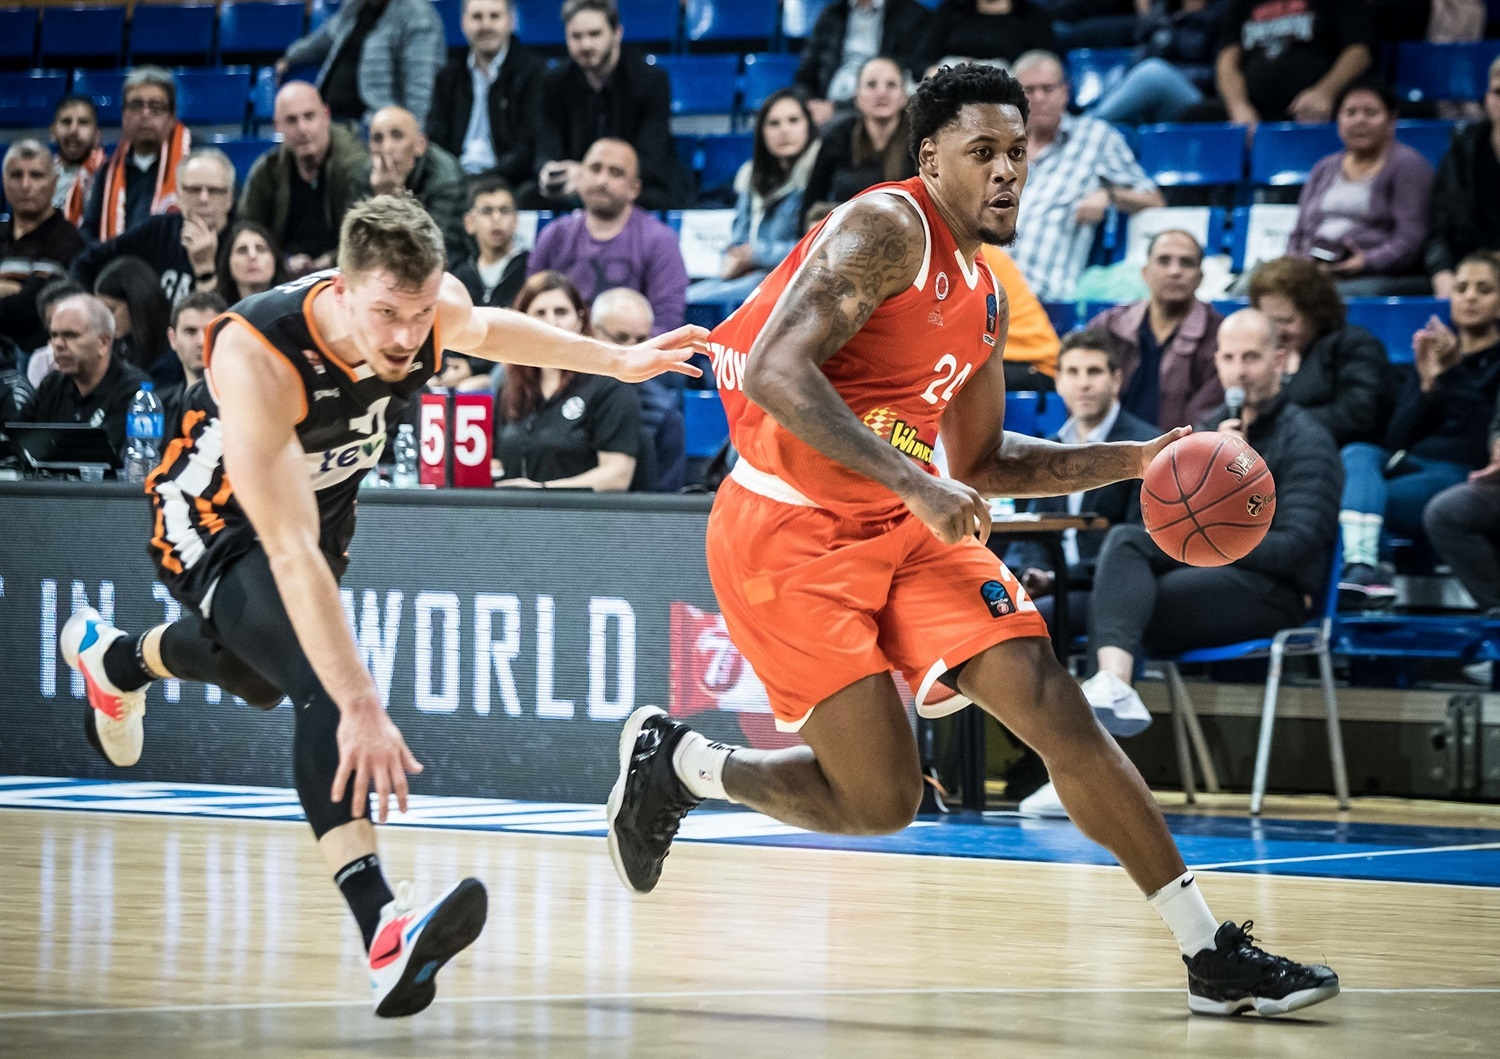 James Kelly - Maccabi Rishon Lezion (photo Rishon) - EC19